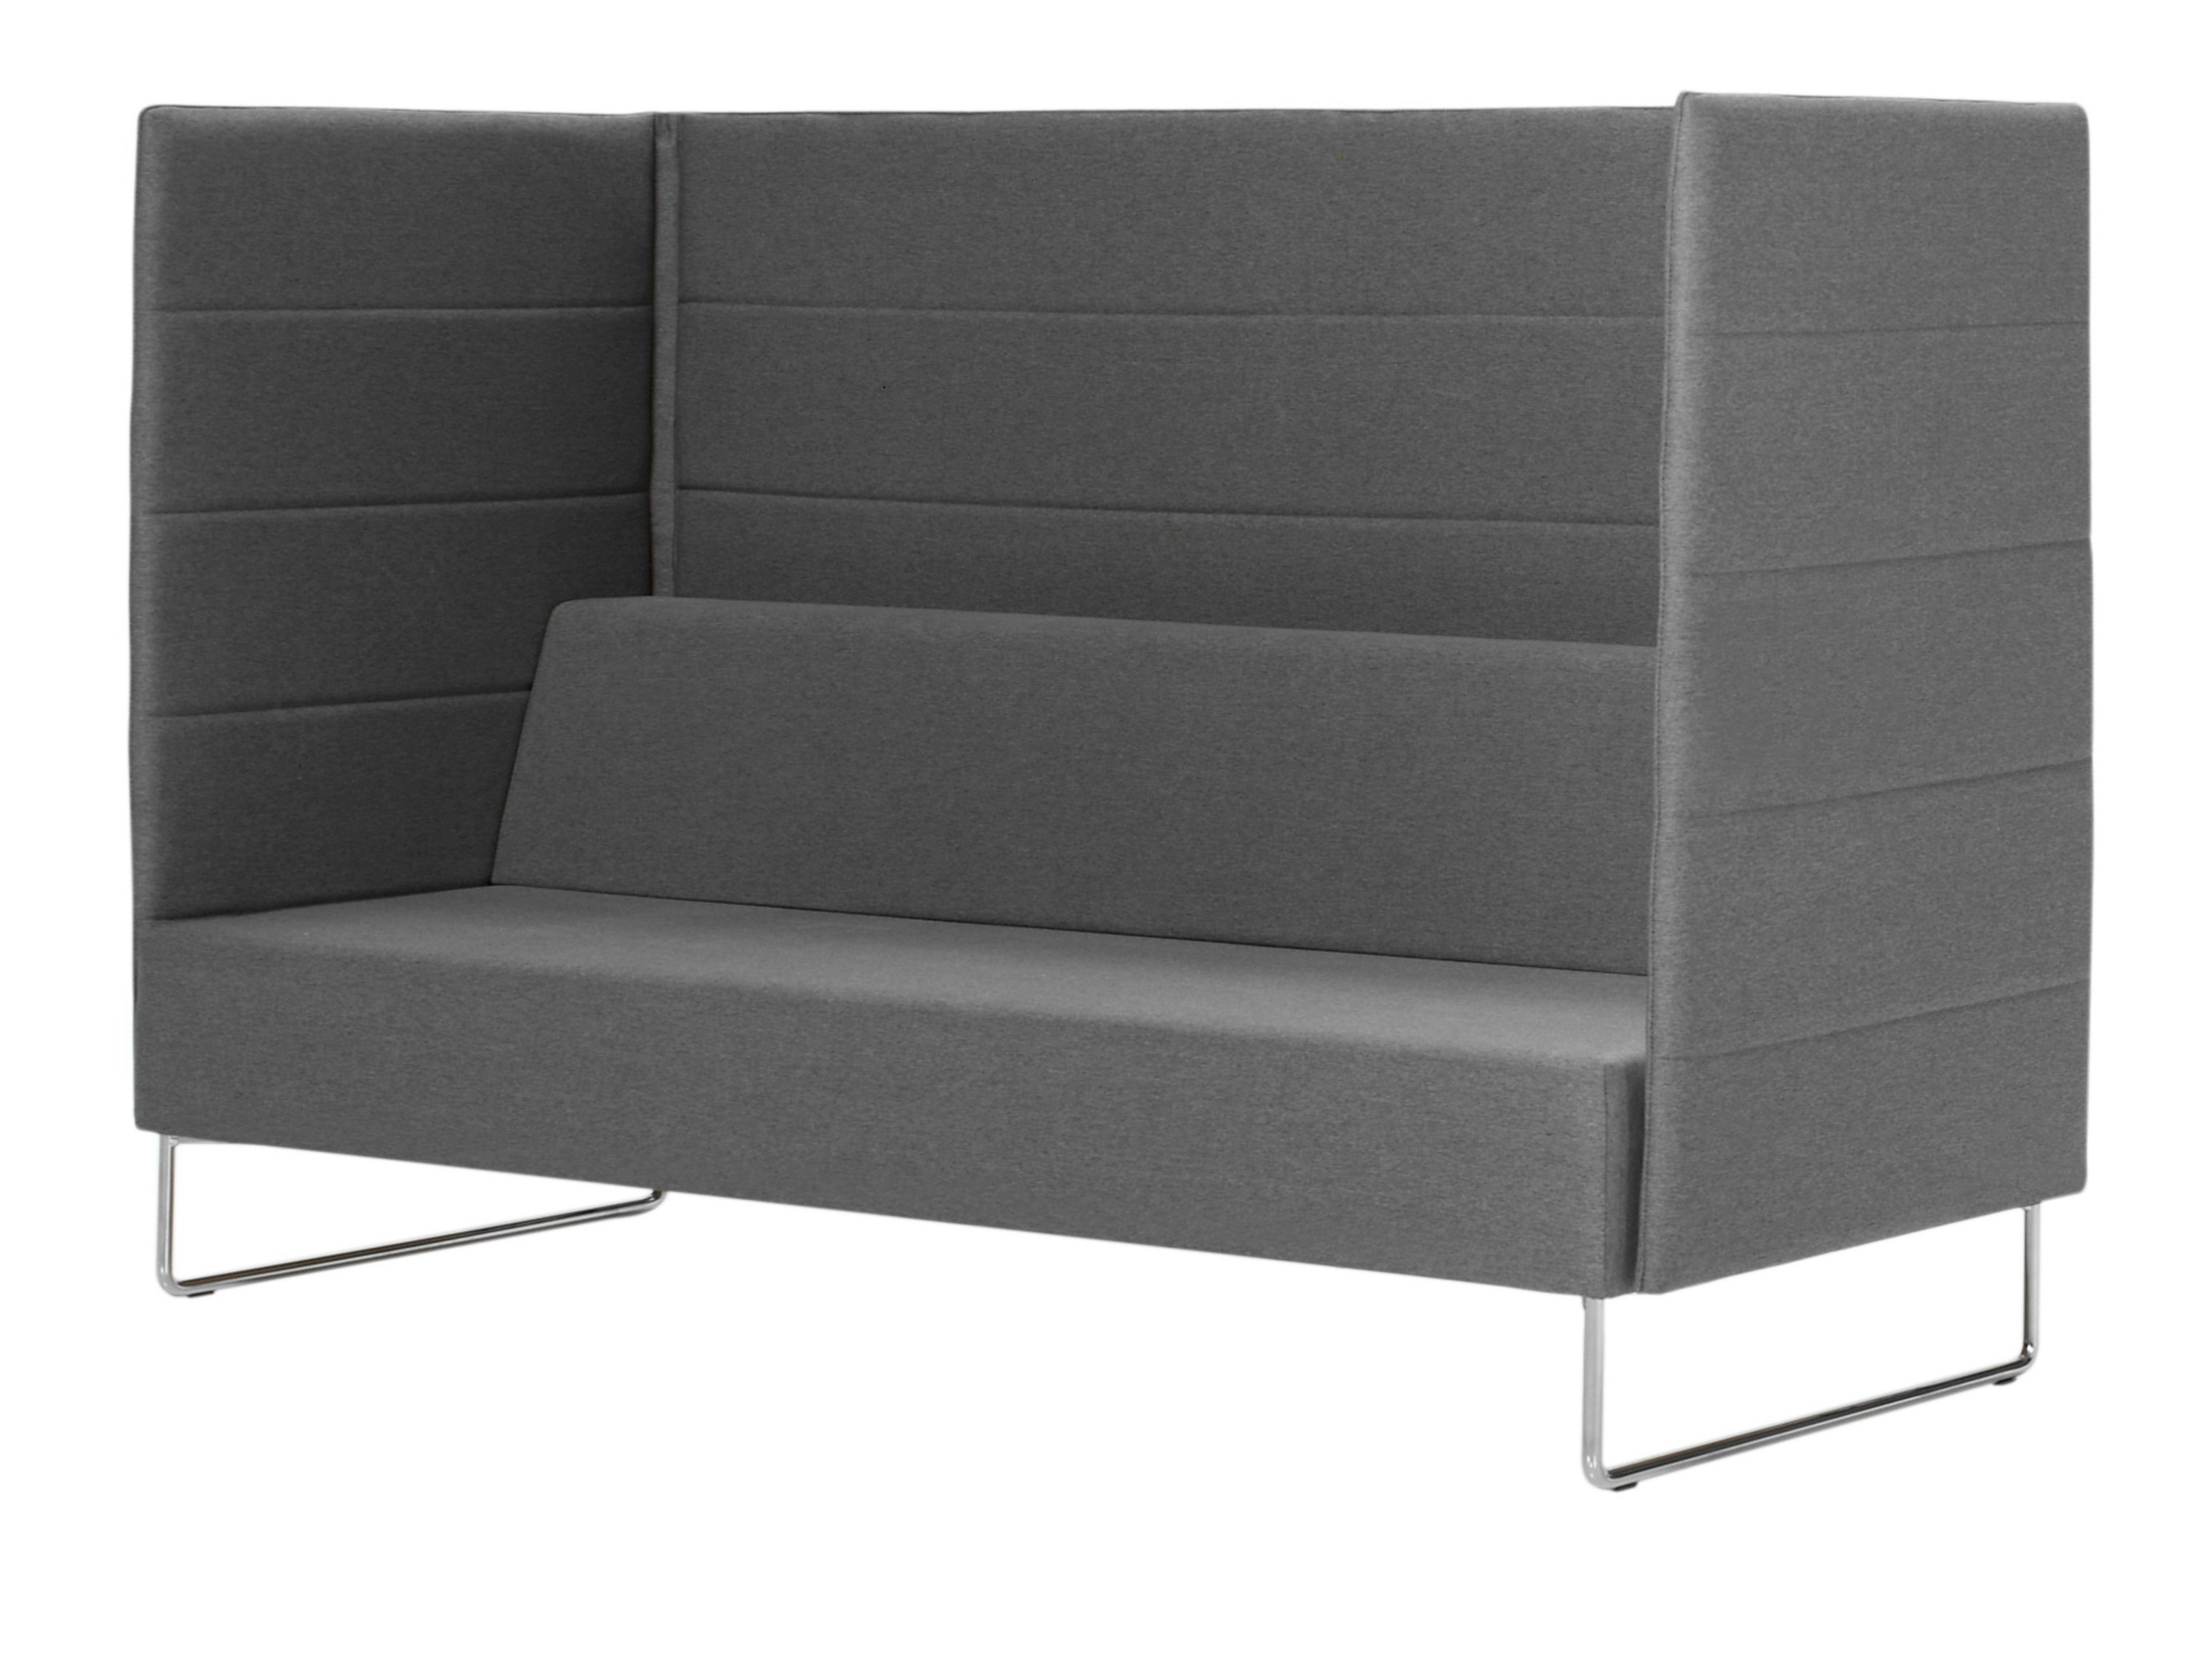 tetris sofa mit hoher r ckenlehne by inclass mobles. Black Bedroom Furniture Sets. Home Design Ideas